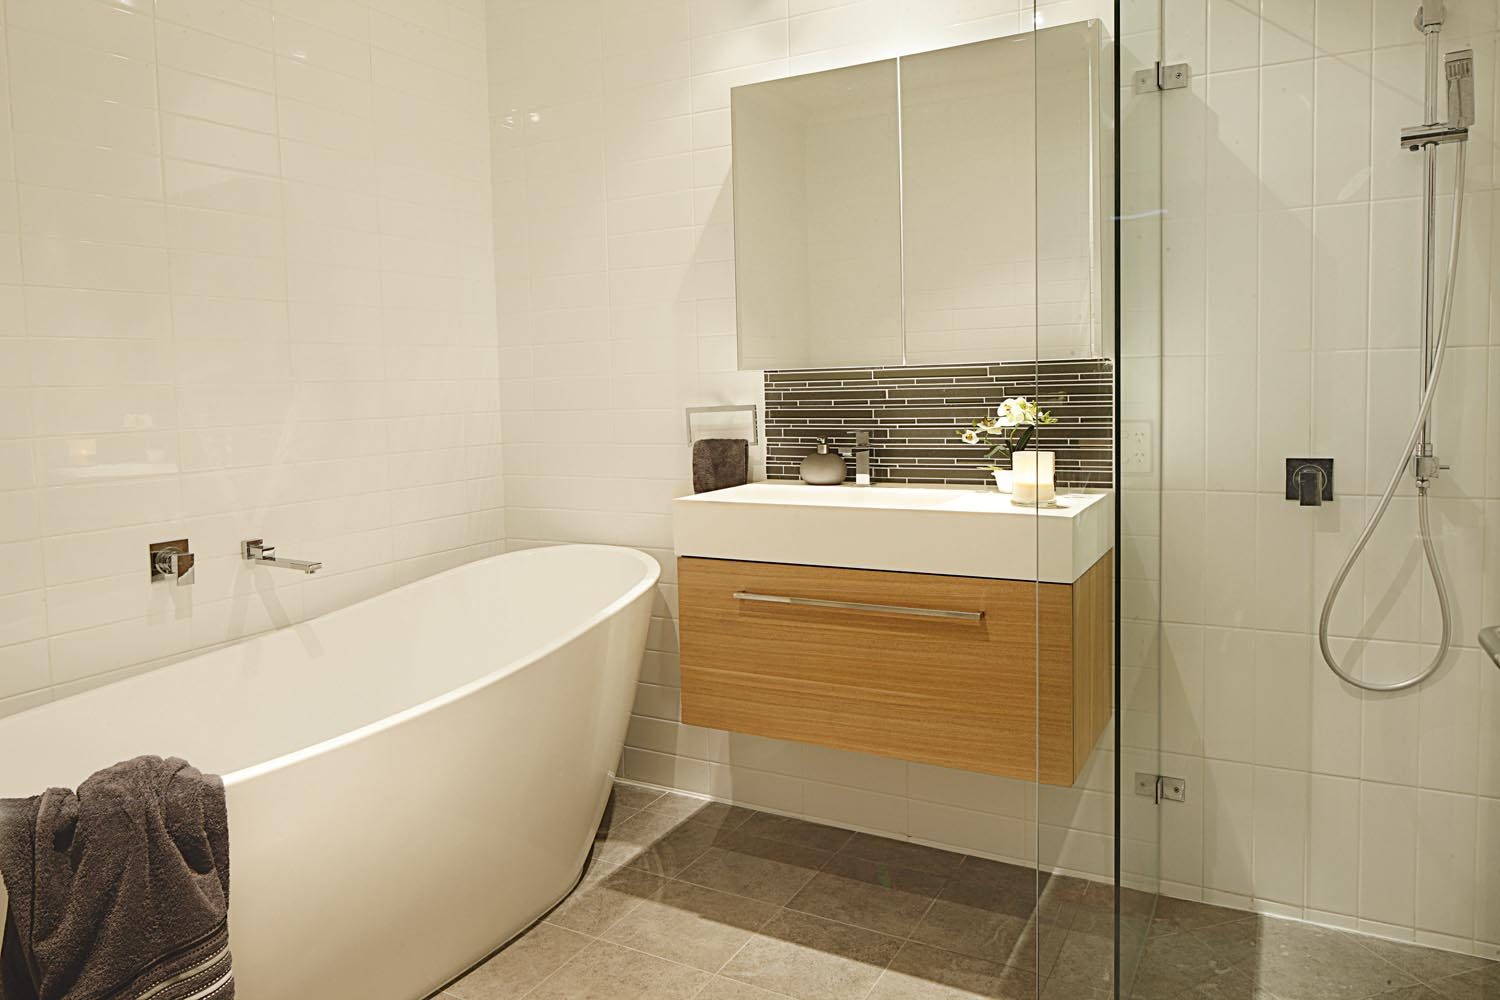 A free-standing bath is a luxe addition to a minimalist bathroom